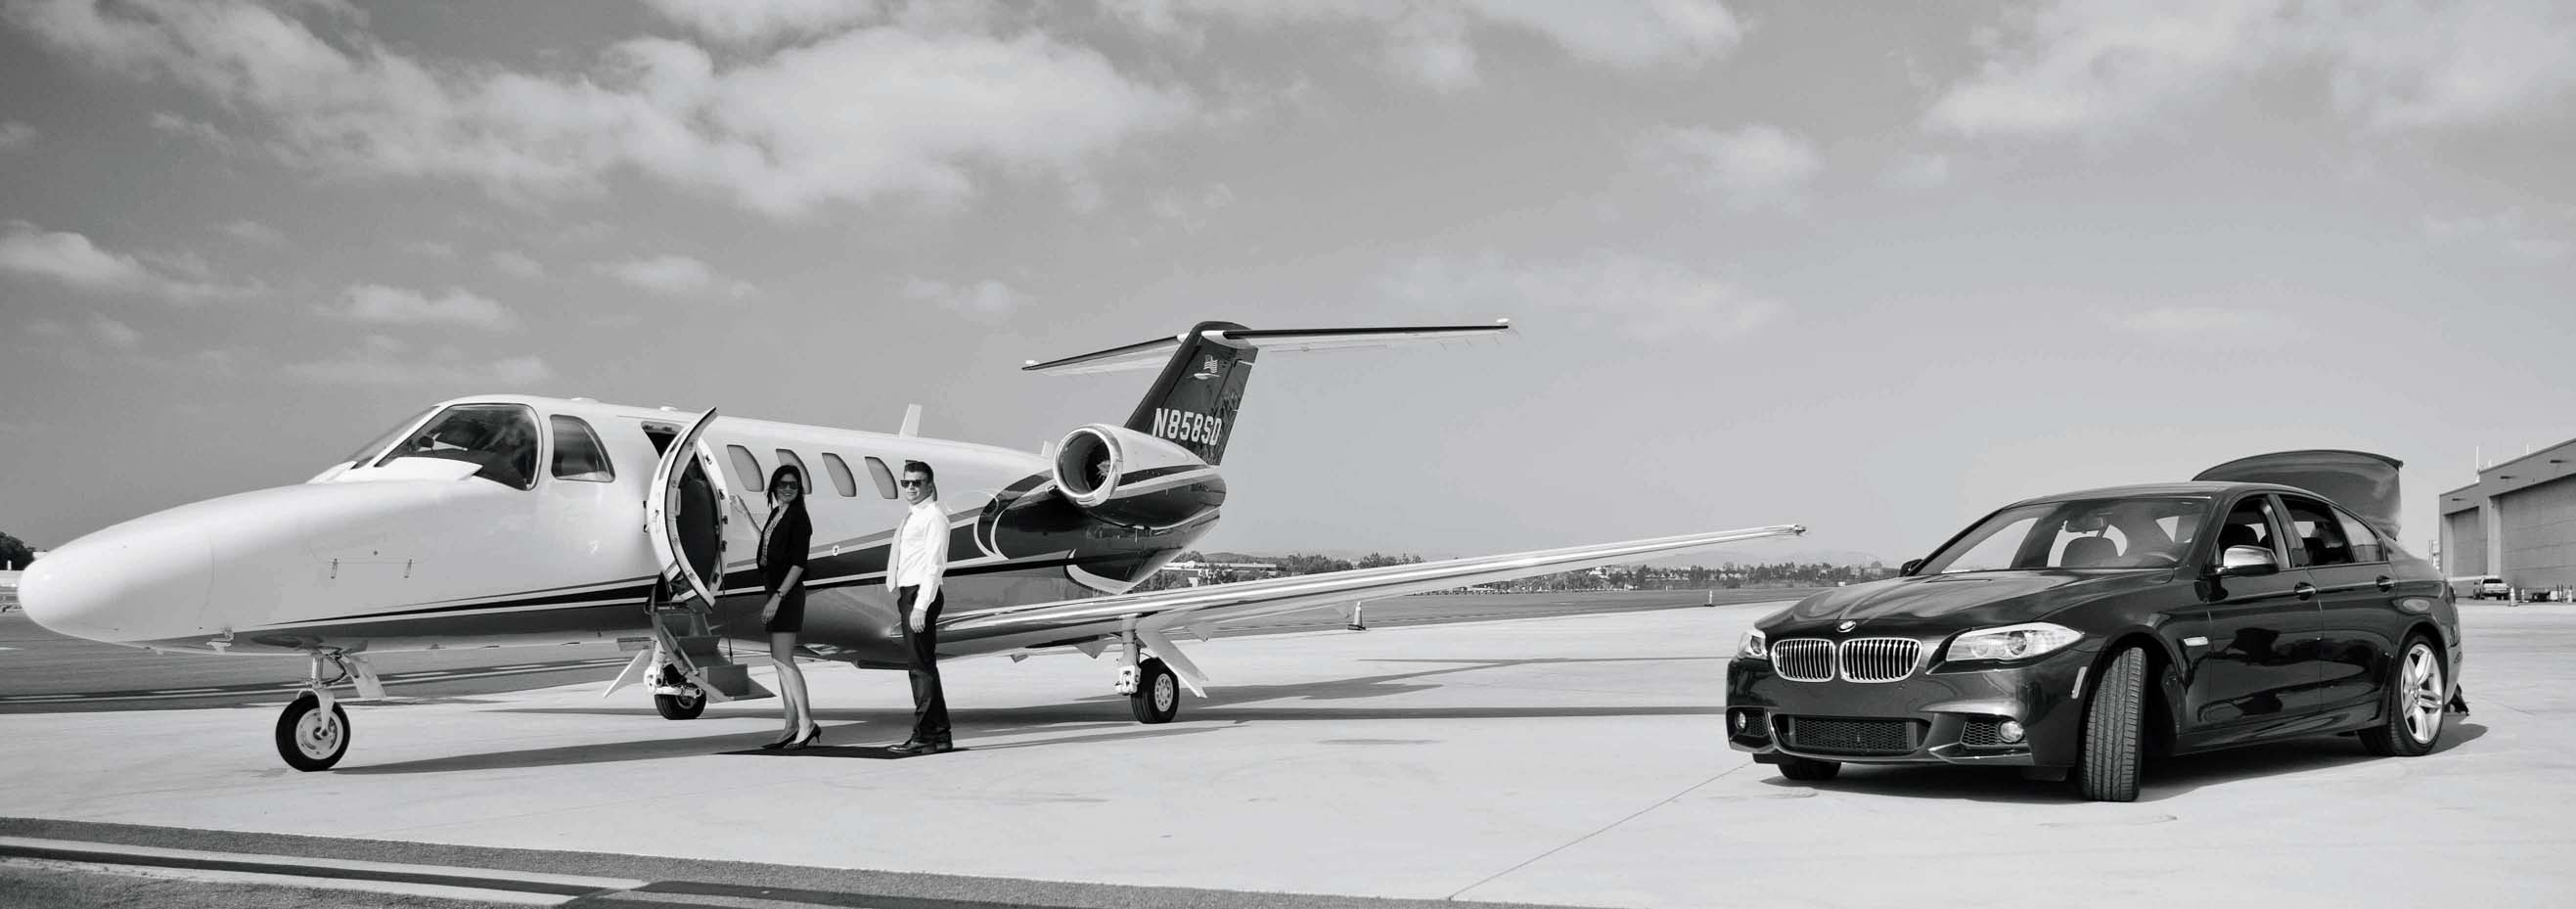 San Diego Private Jets and Private Plane Sales 2017 Results - Latitude 33 Aviation